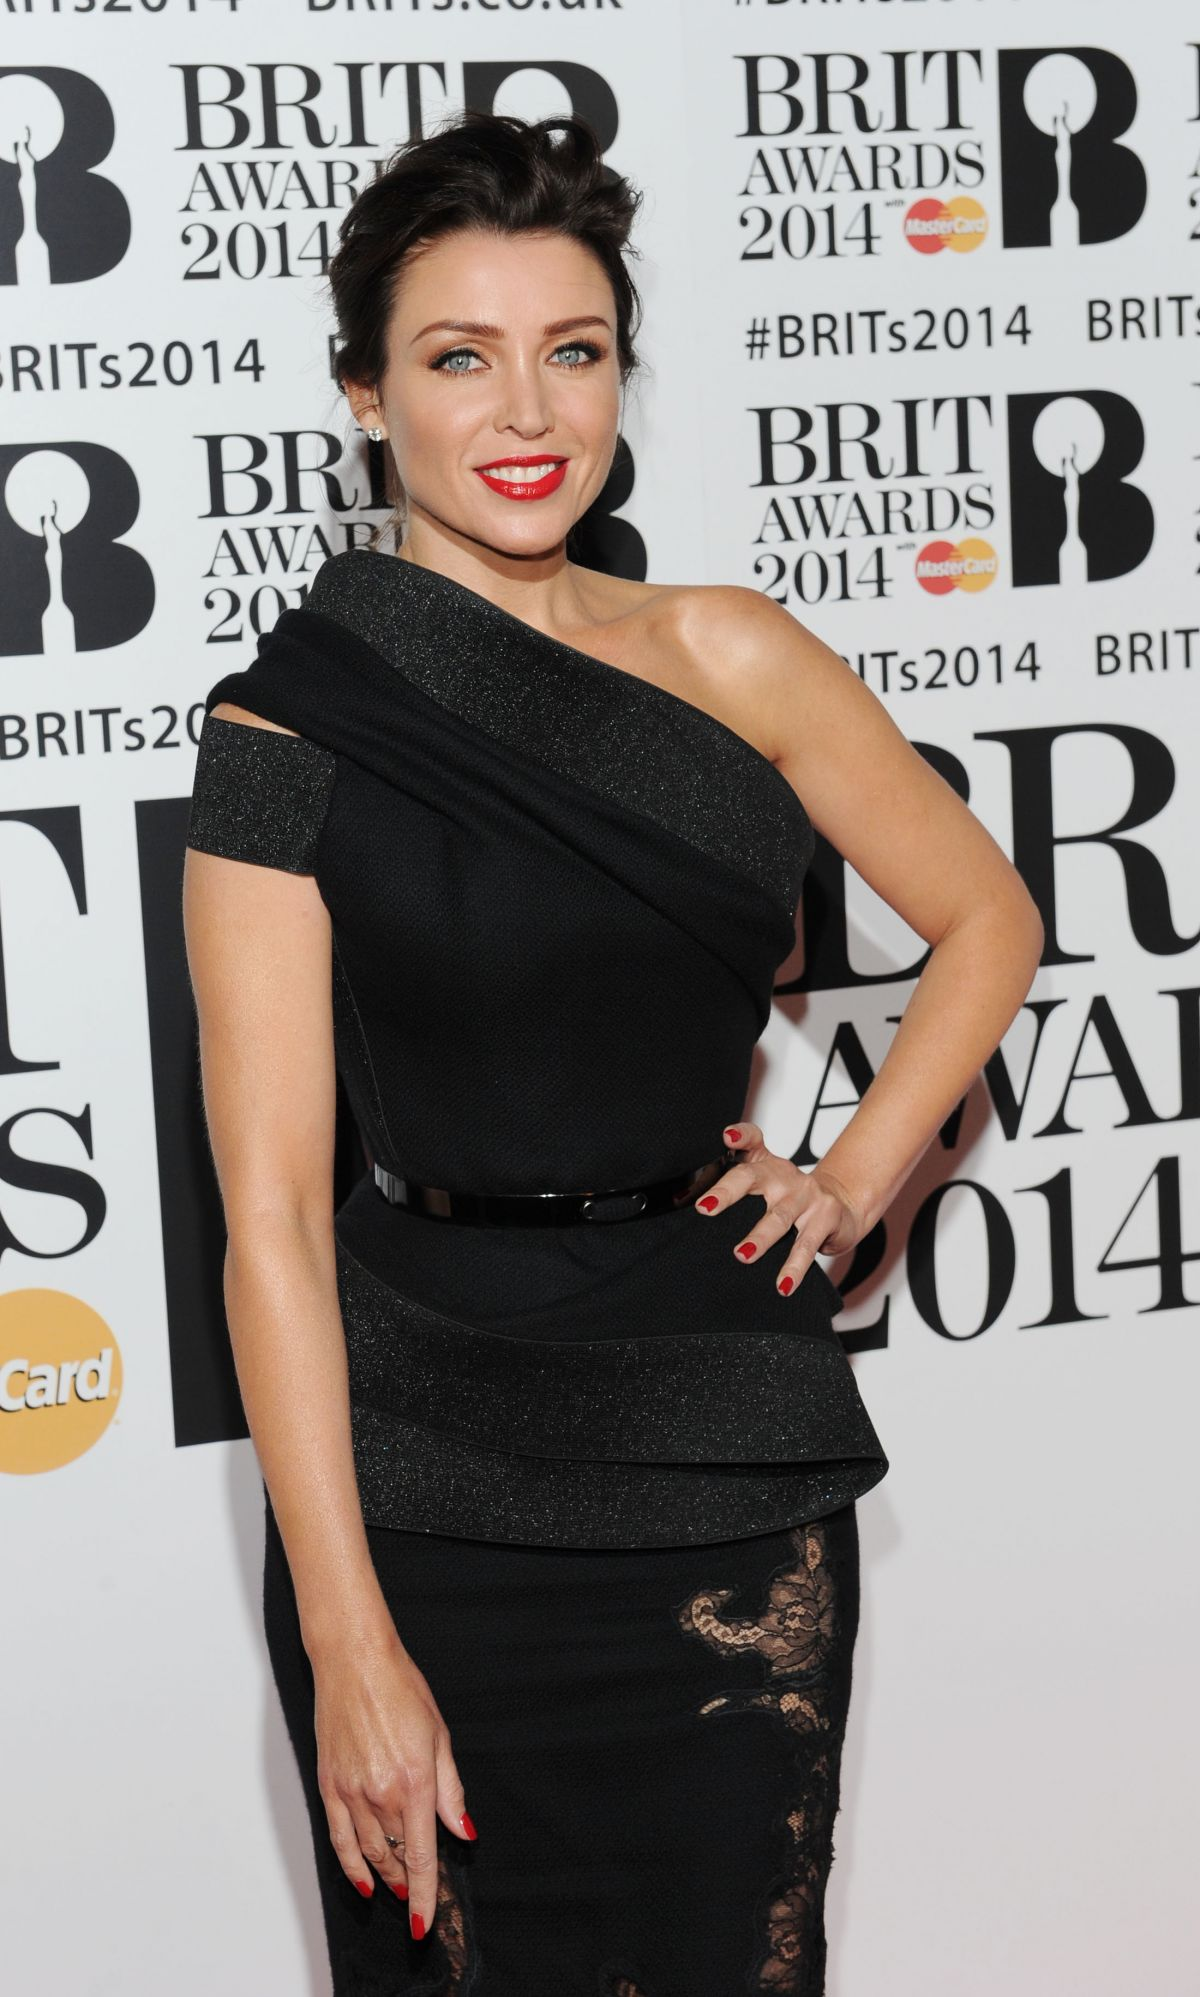 DANNI MINOGUE at 2014 Brit Awards in London